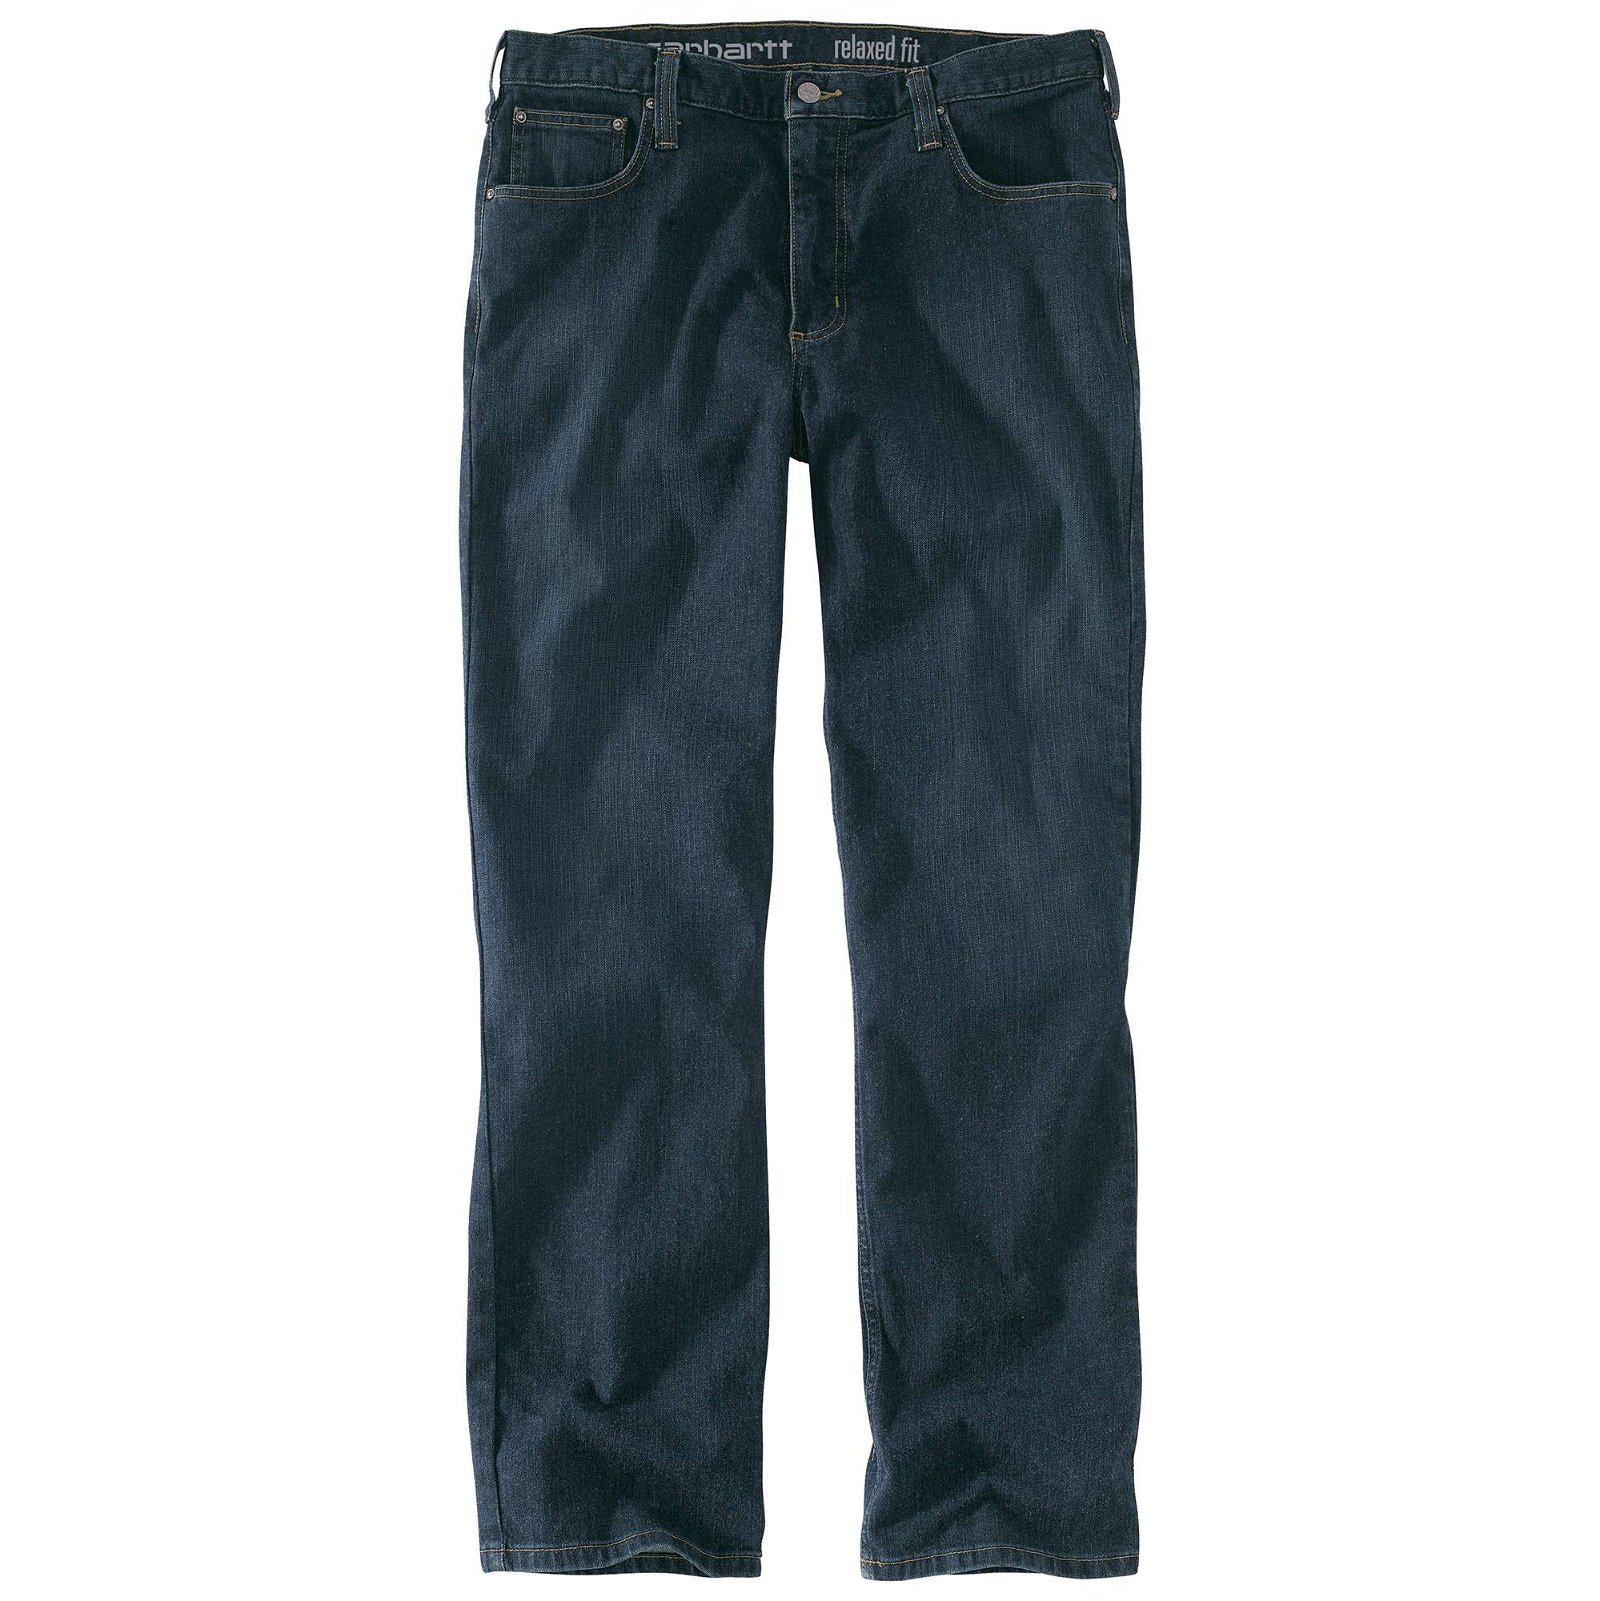 MEN'S RUGGED FLEX® RELAXED FIT STRAIGHT LEG JEAN